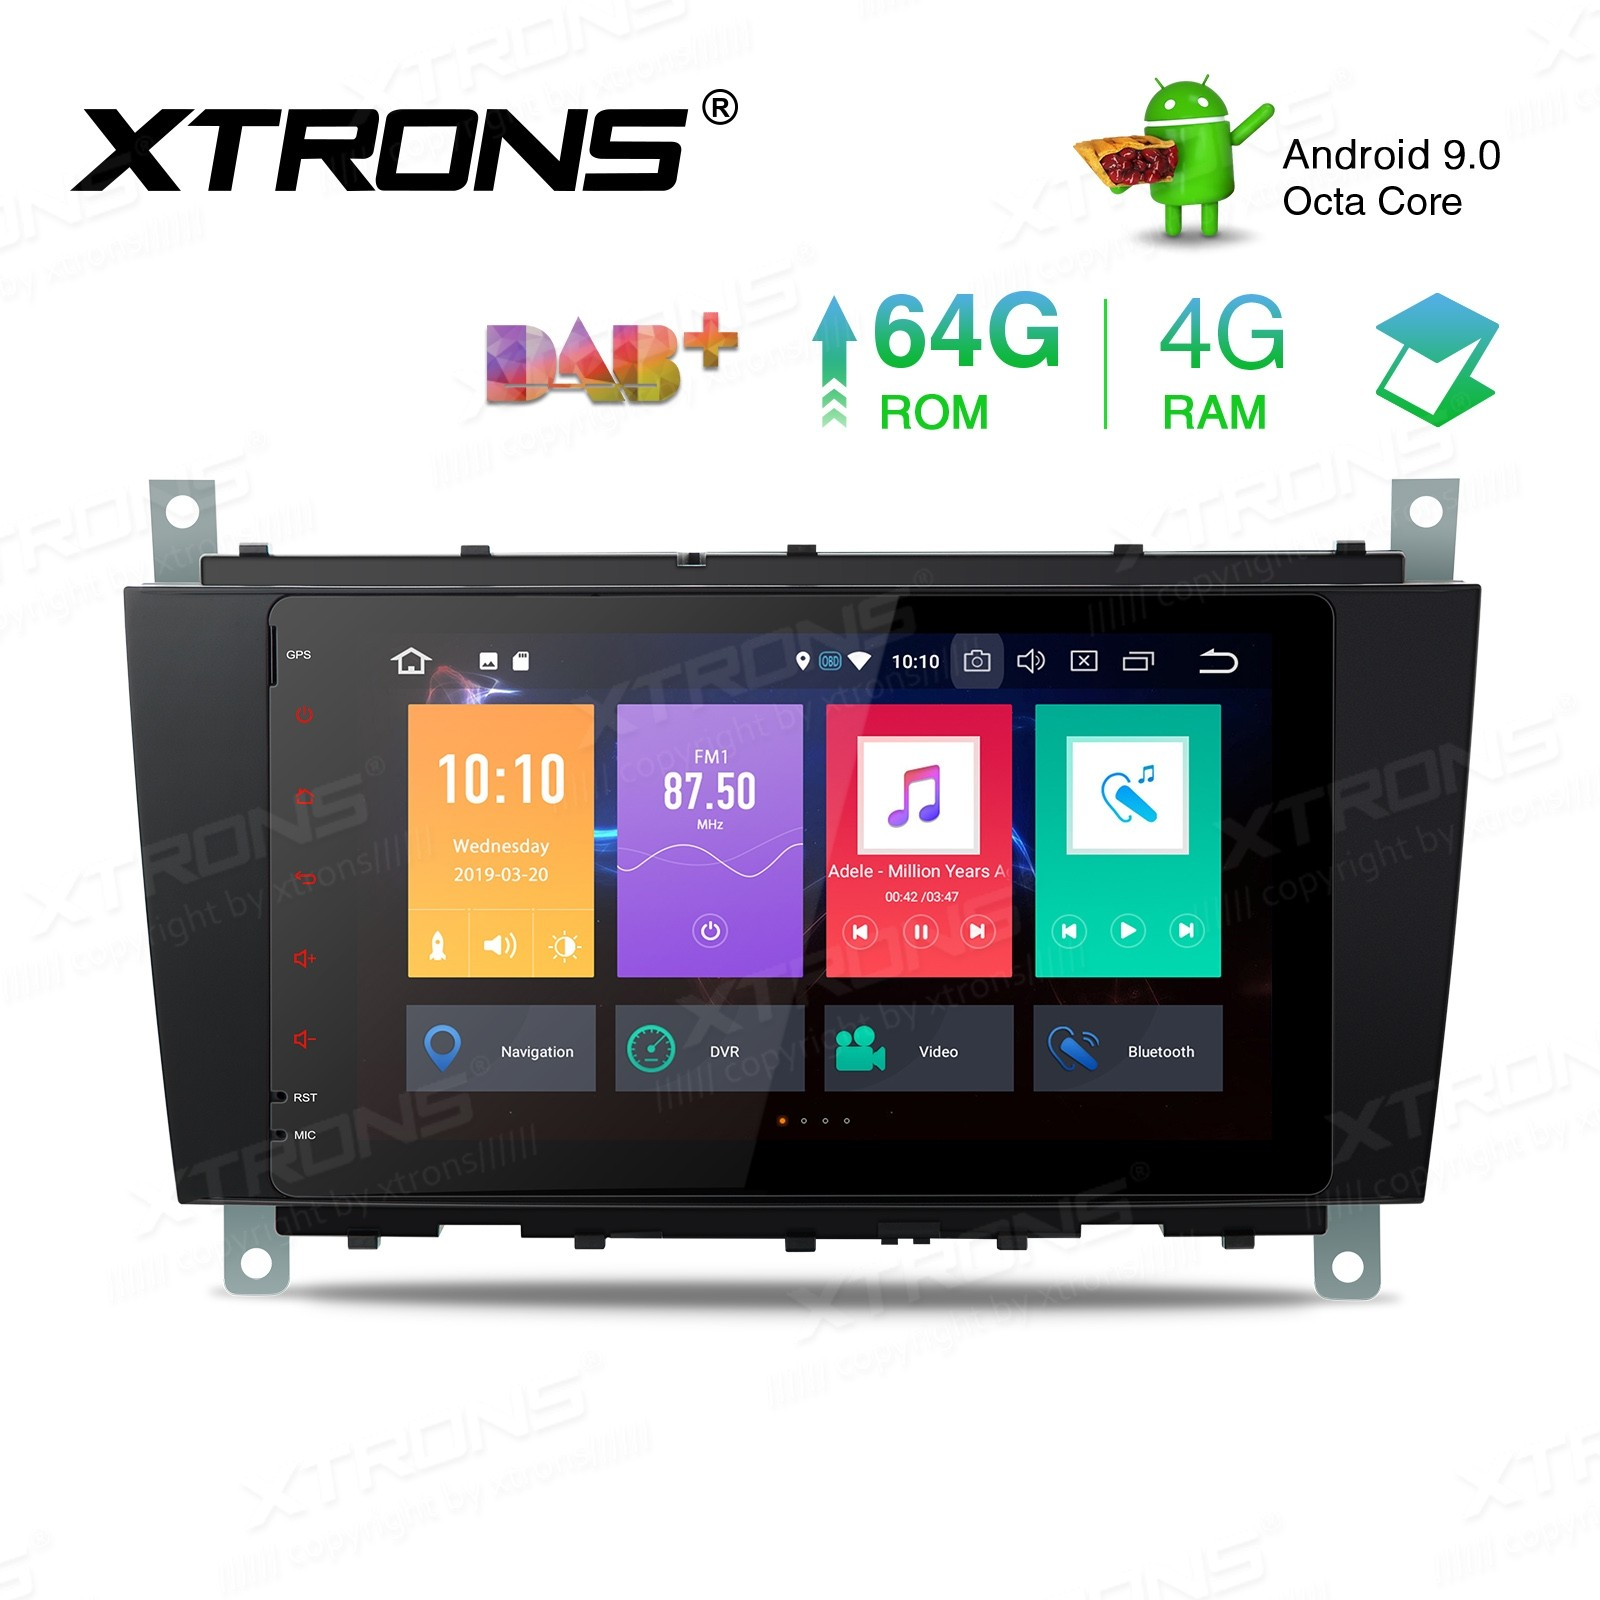 8 inch Android 9.0 Octa-Core 64G ROM + 4G RAM Car Stereo Multimedia GPS System Custom Fit for Mercedes-Benz